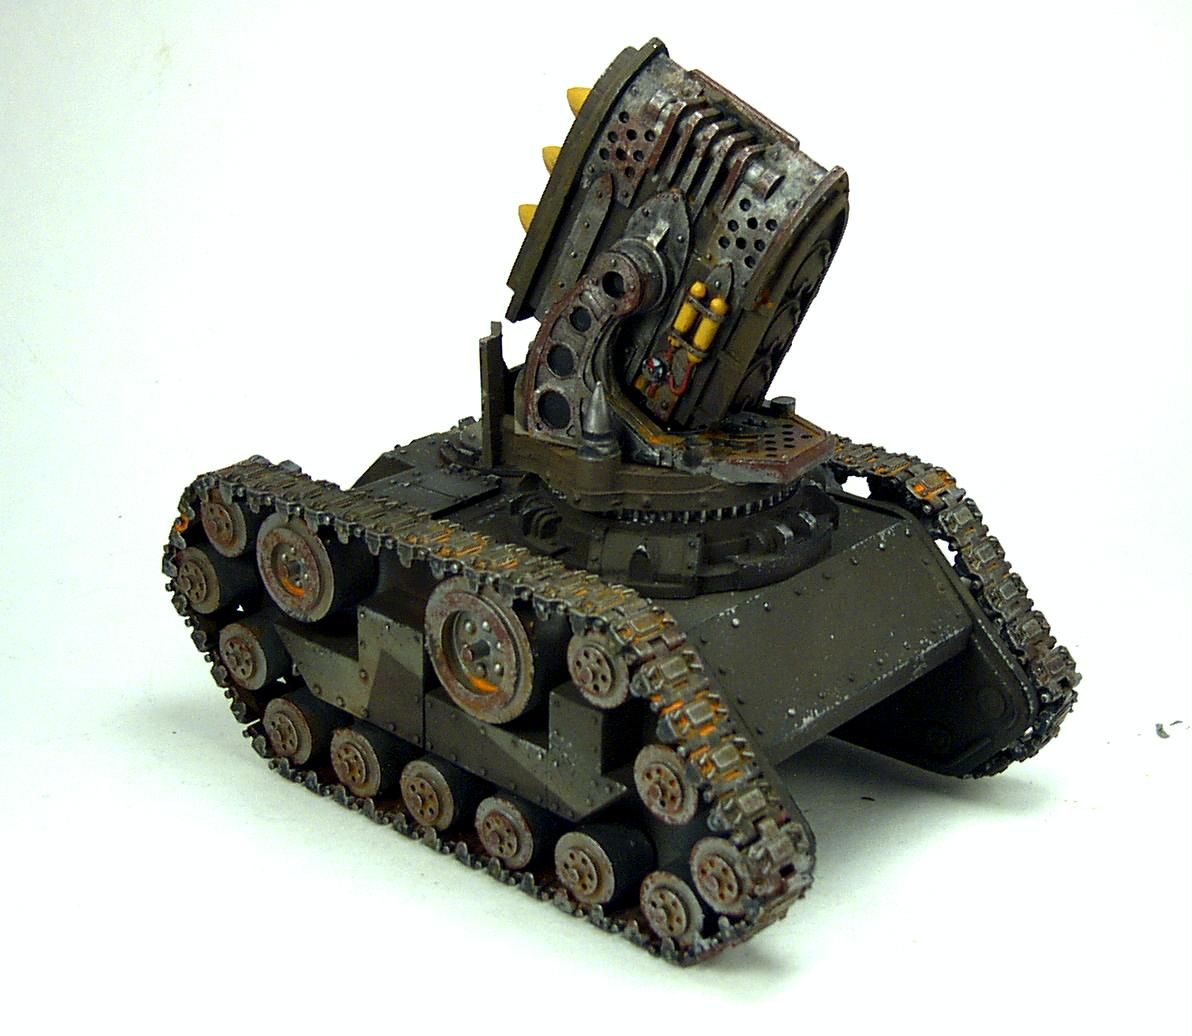 Manticore Imperial Guard Tank, Warhammer 40,000